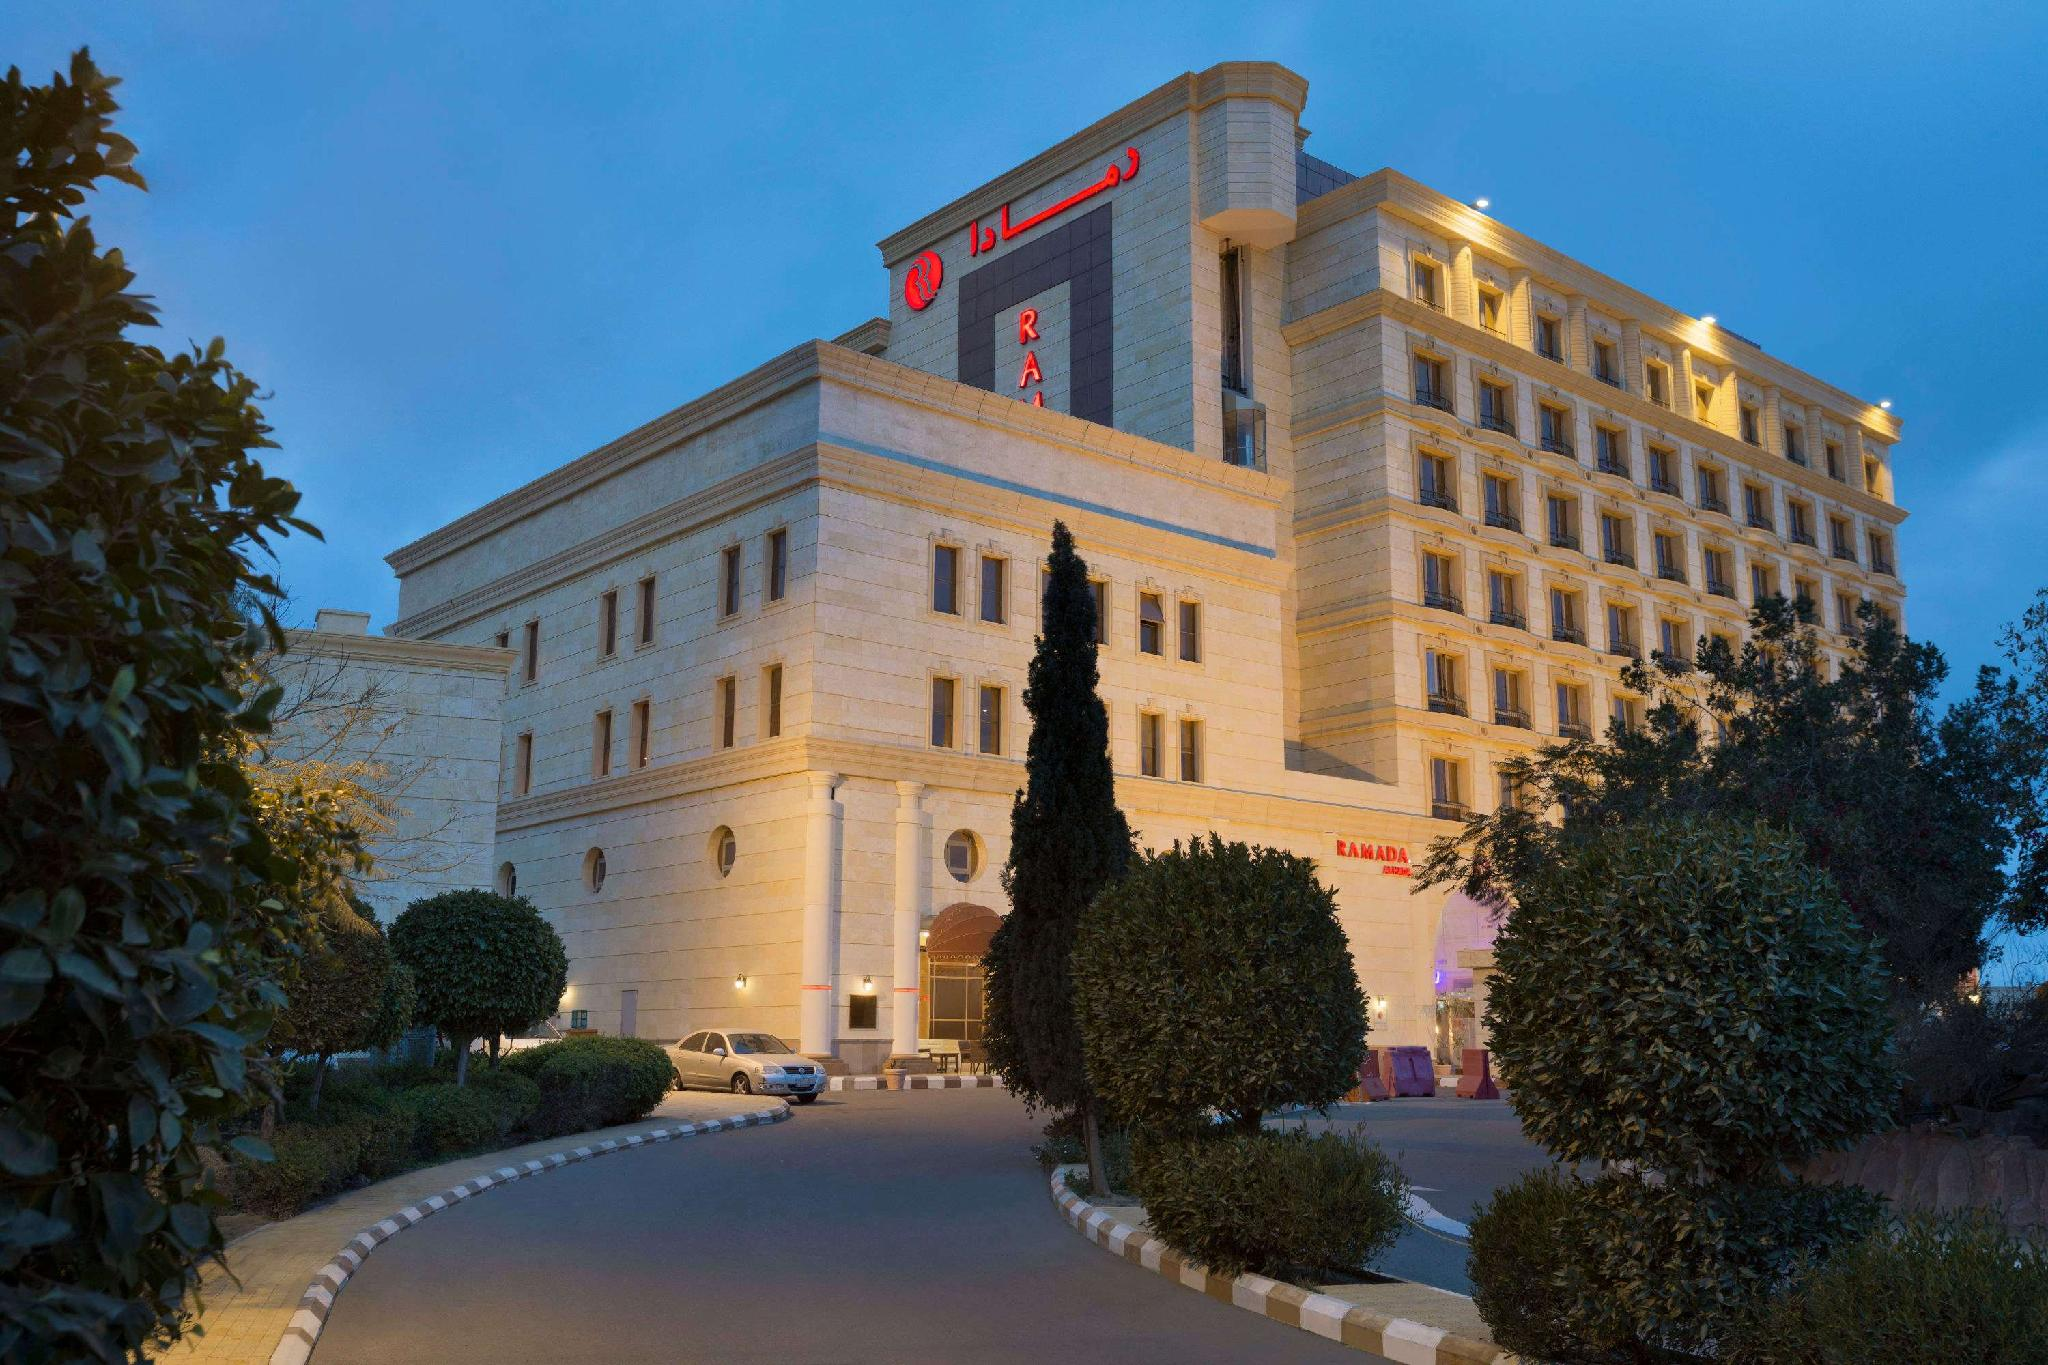 Ramada by Wyndham Al Hada - Saudi Arabia Hotels Villas Information